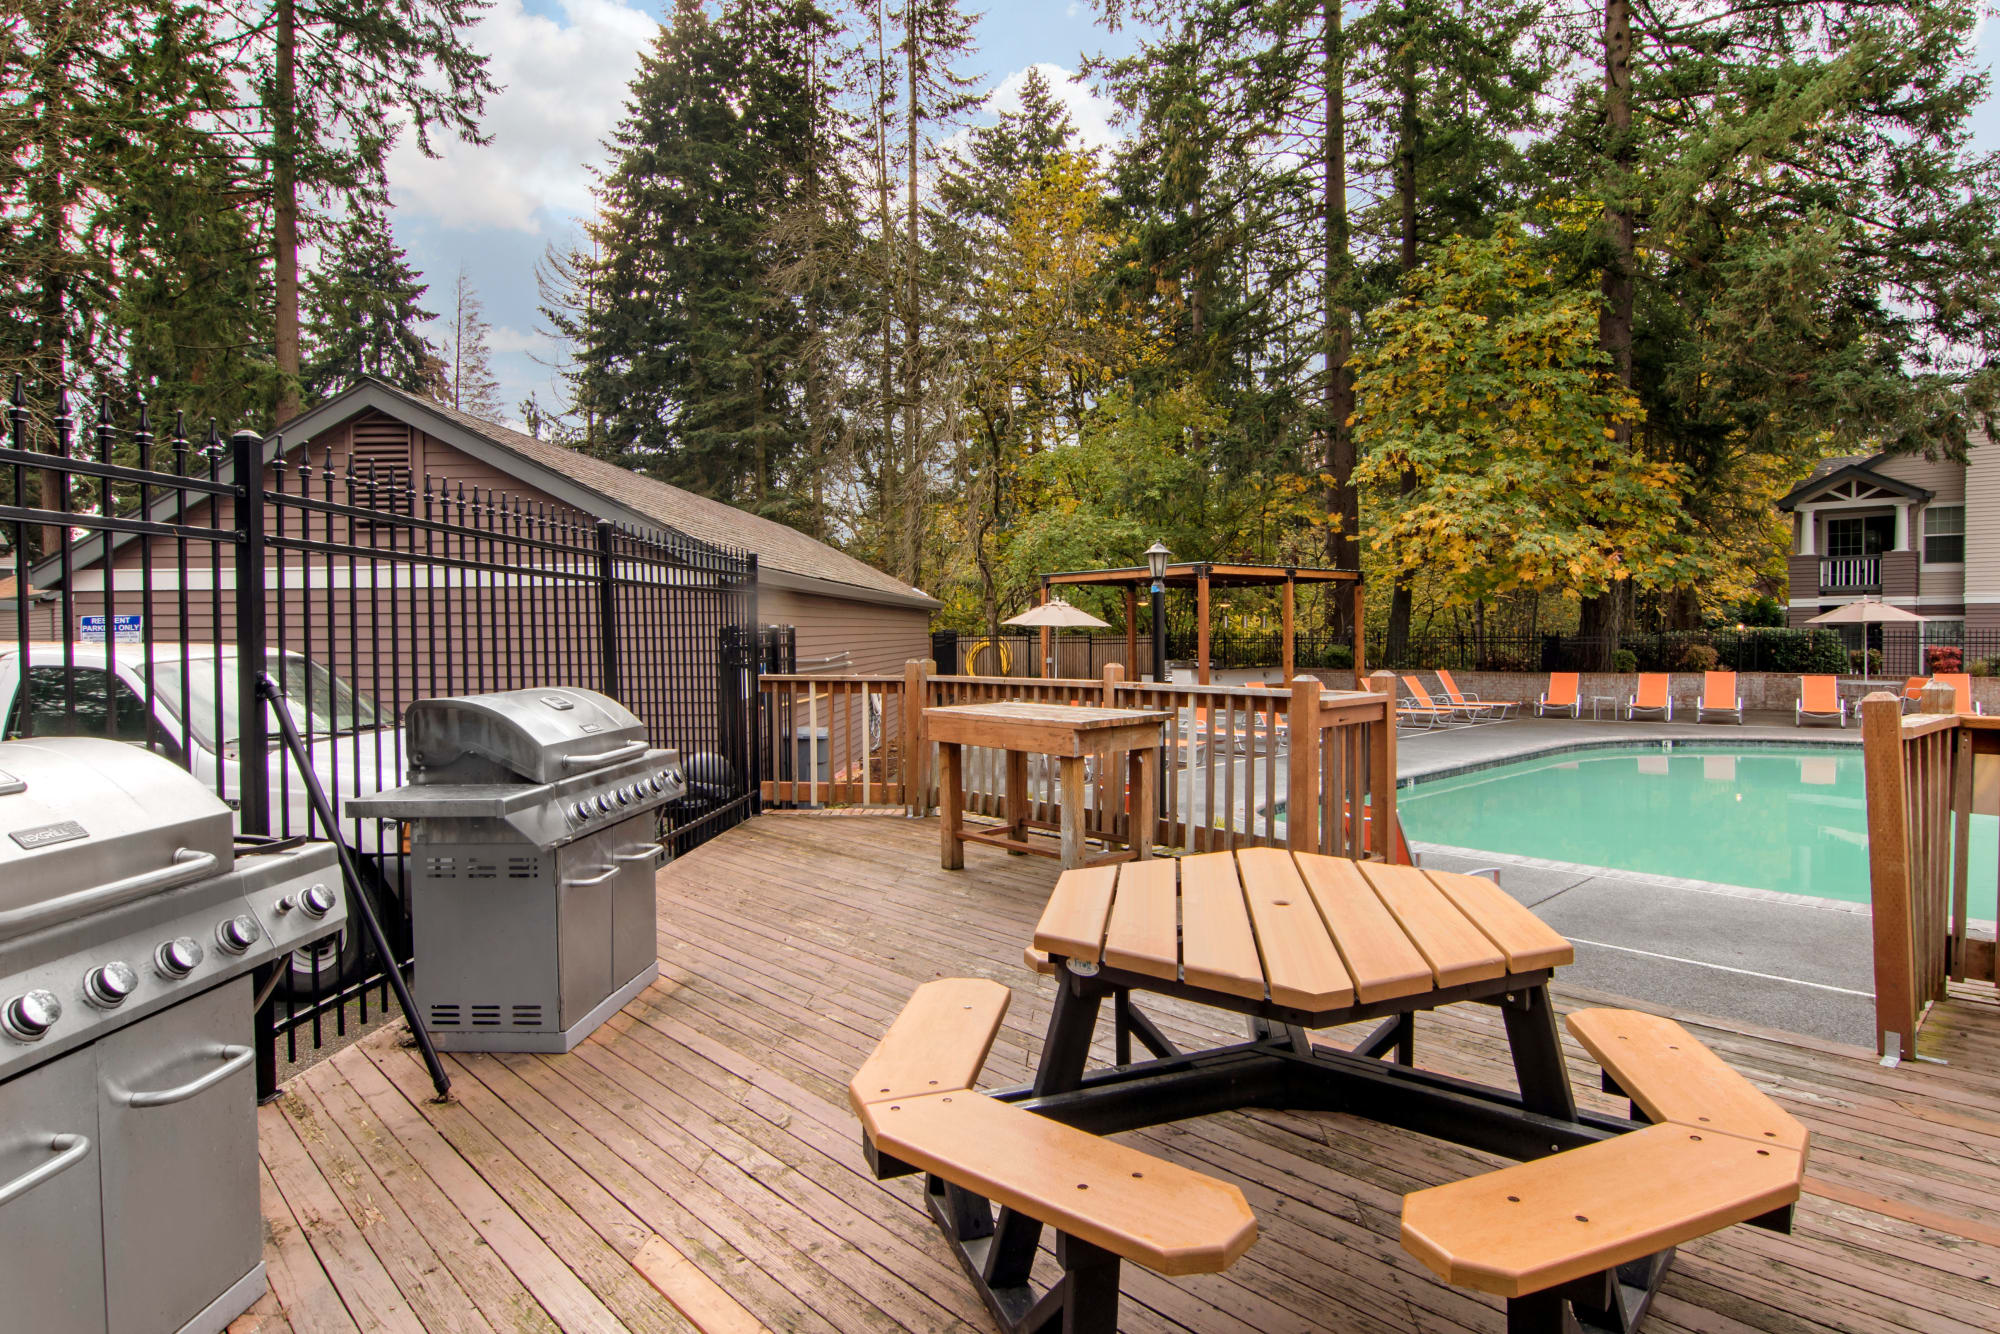 outdoor bbq area with seating, poolside At Autumn Chase Apartments